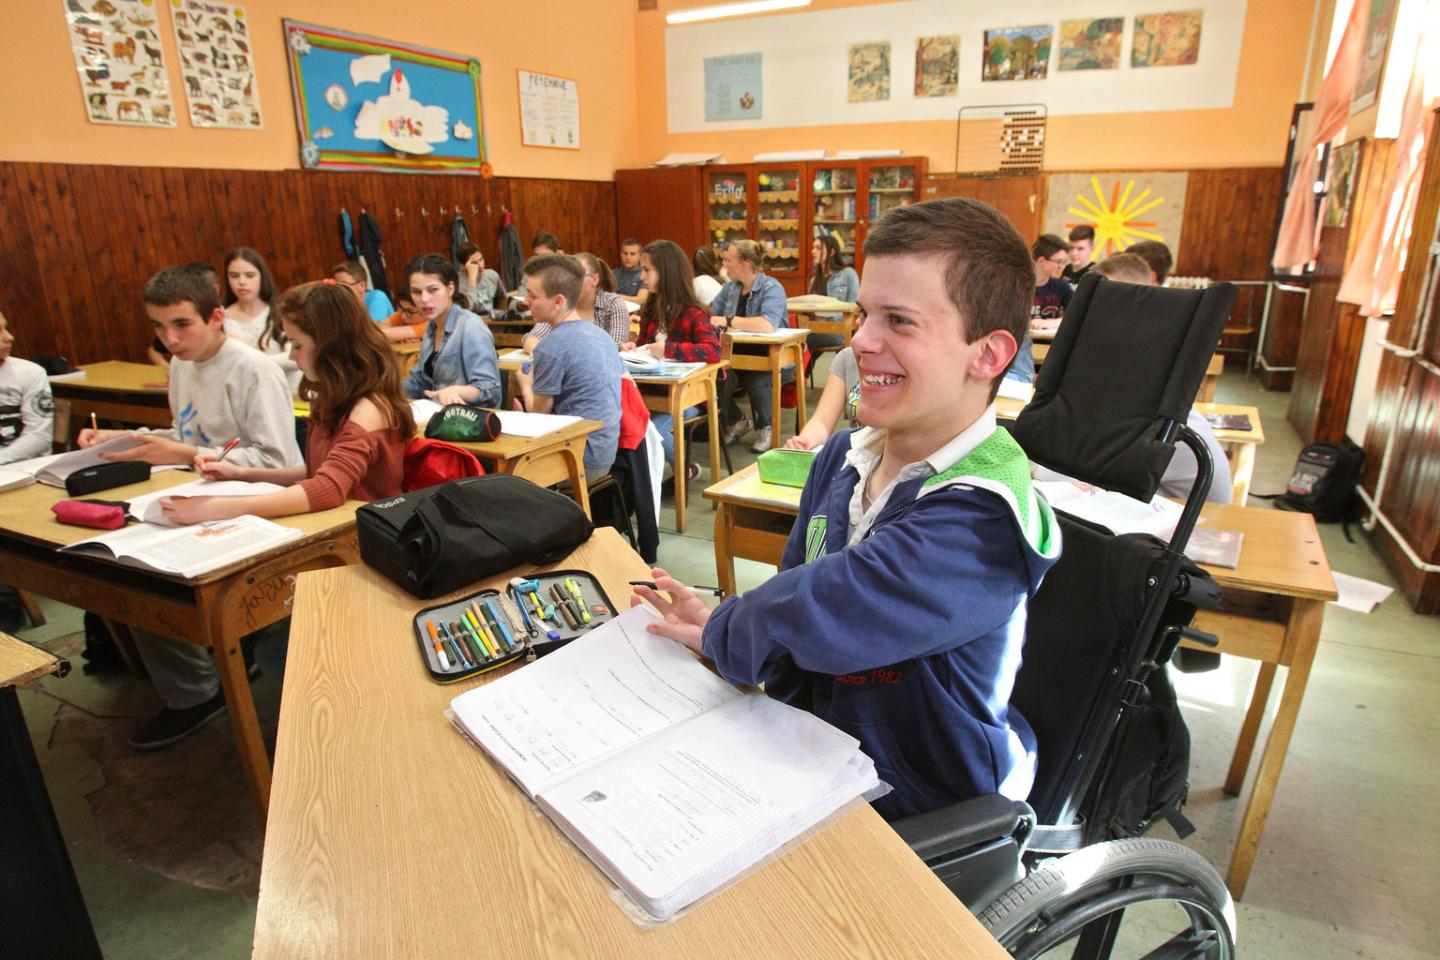 18-year-old Atlia, who was born with severely damaged limbs, smiling in class at an inclusive school in his home town of Becej in Serbia.